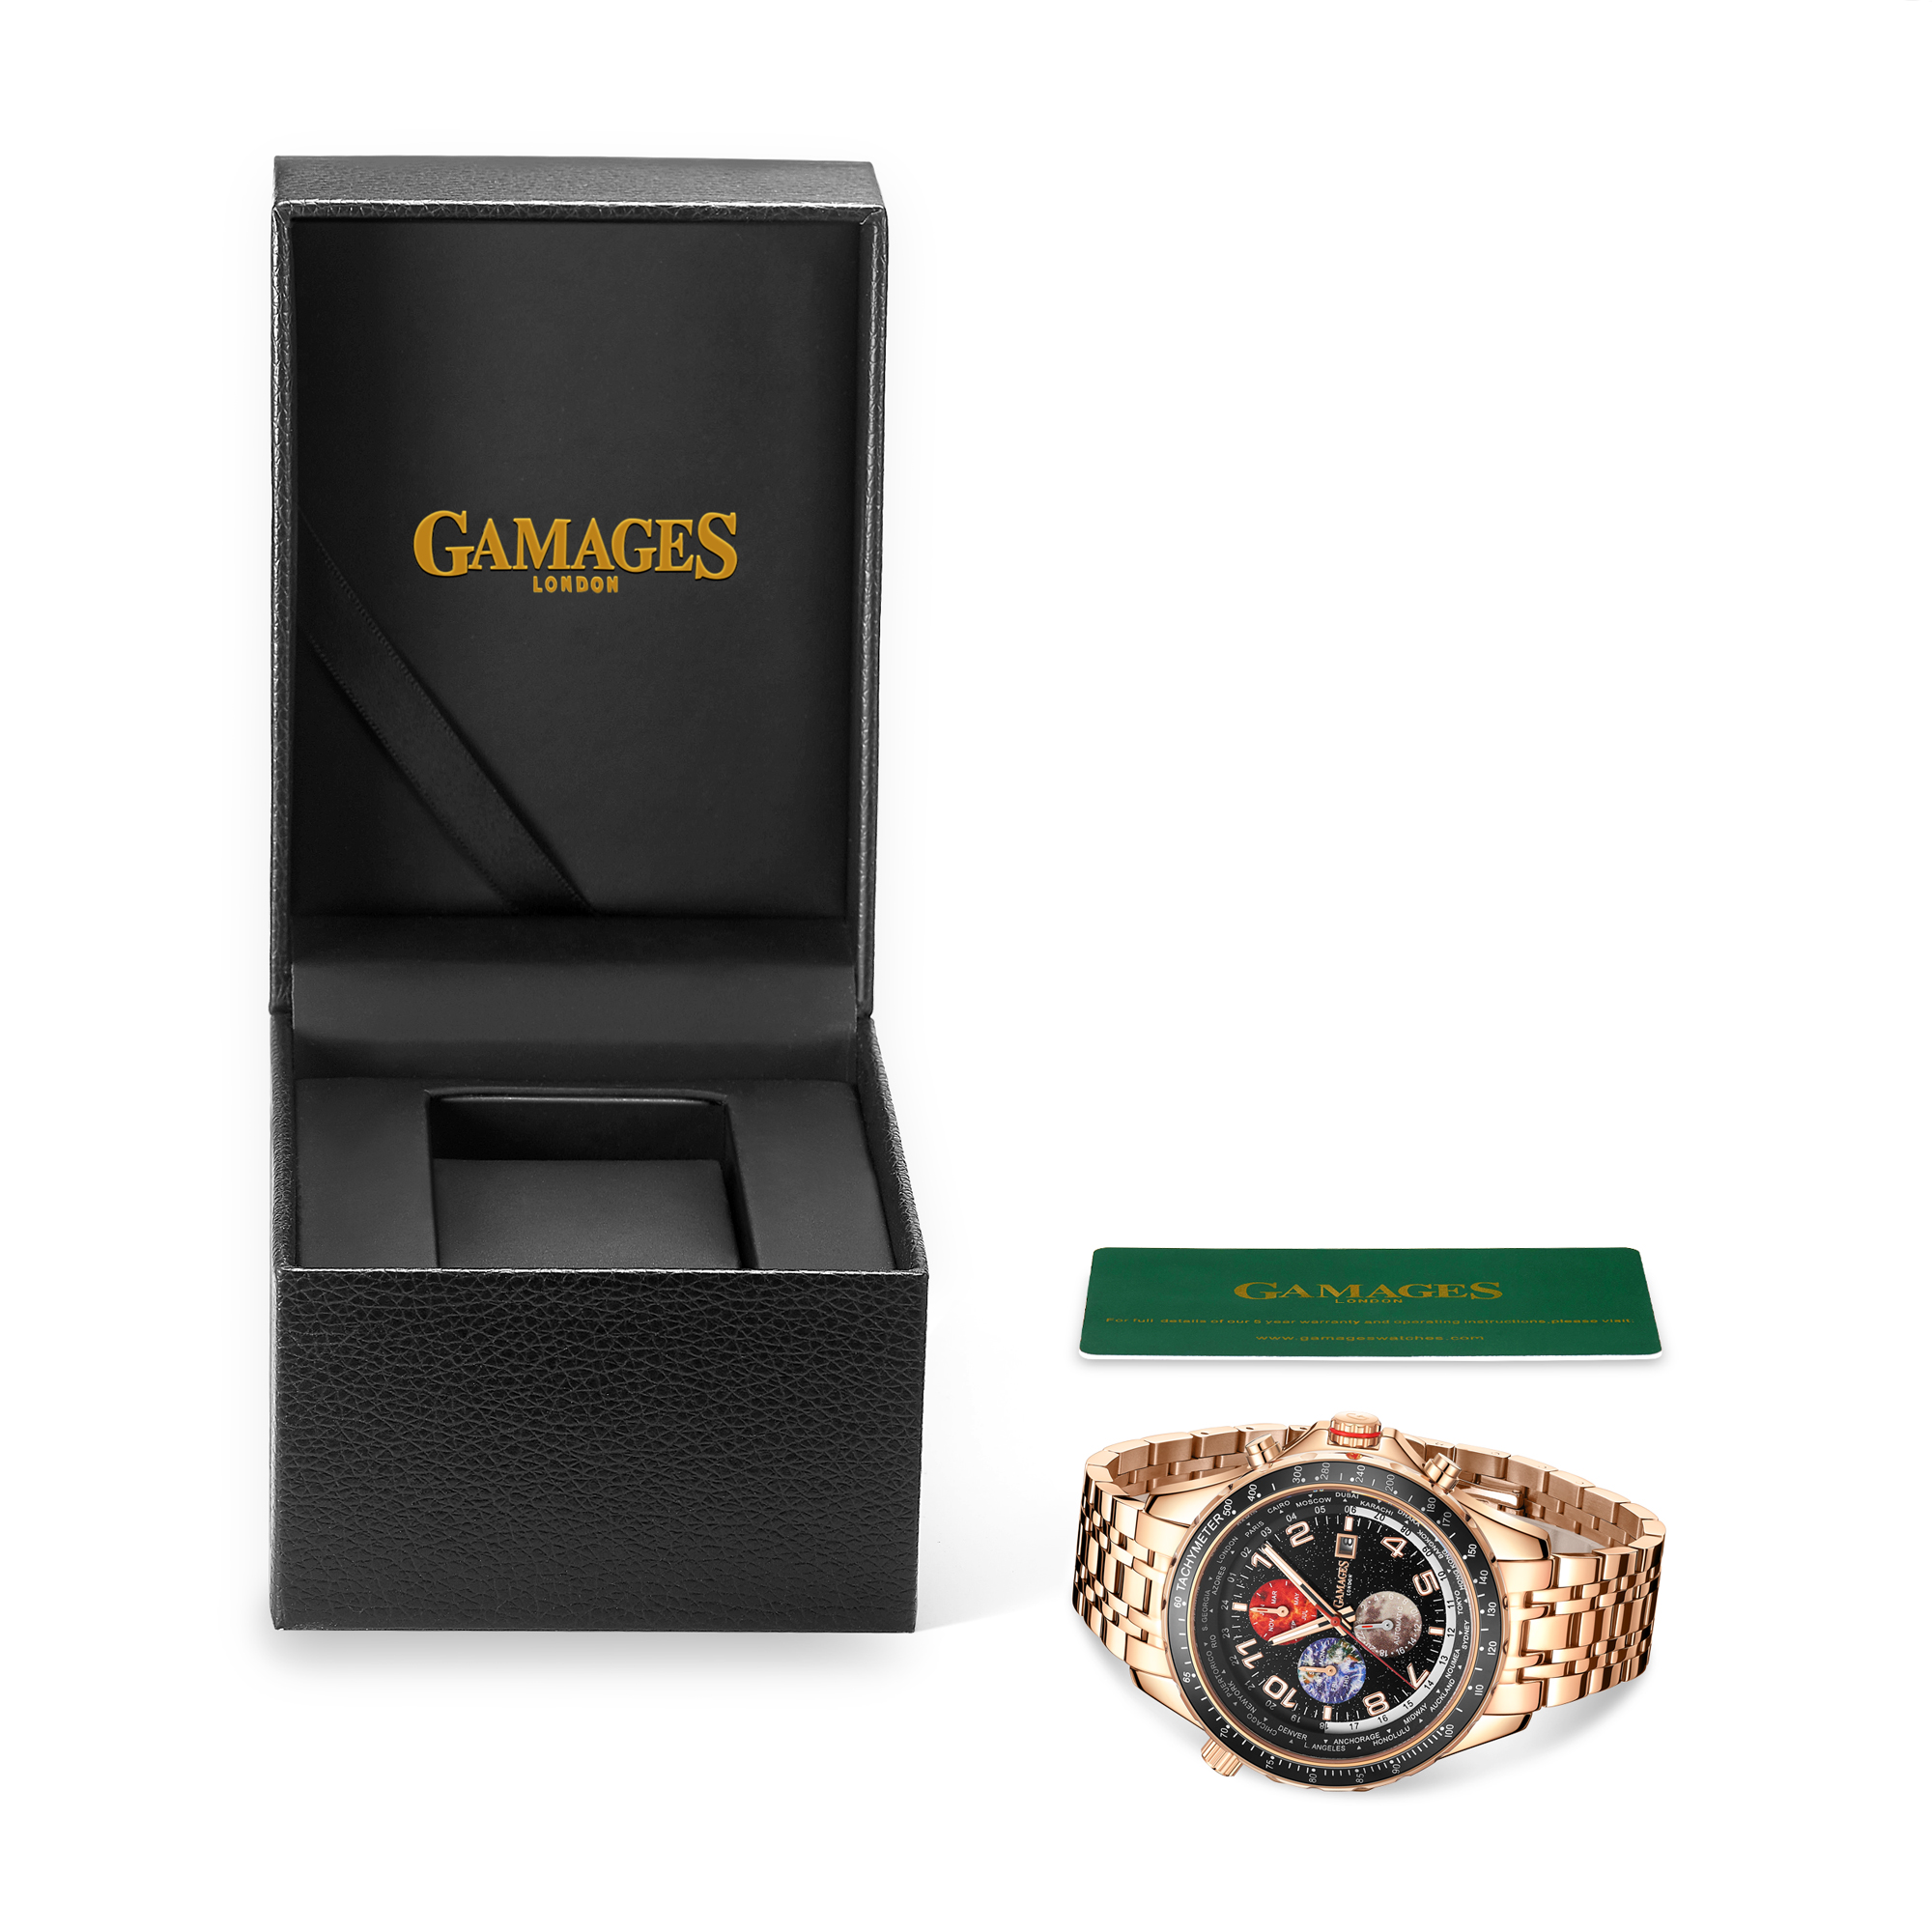 Limited Edition Hand Assembled GAMAGES Astronomer Automatic Rose – 5 Year Warranty & Free Delivery - Image 2 of 4